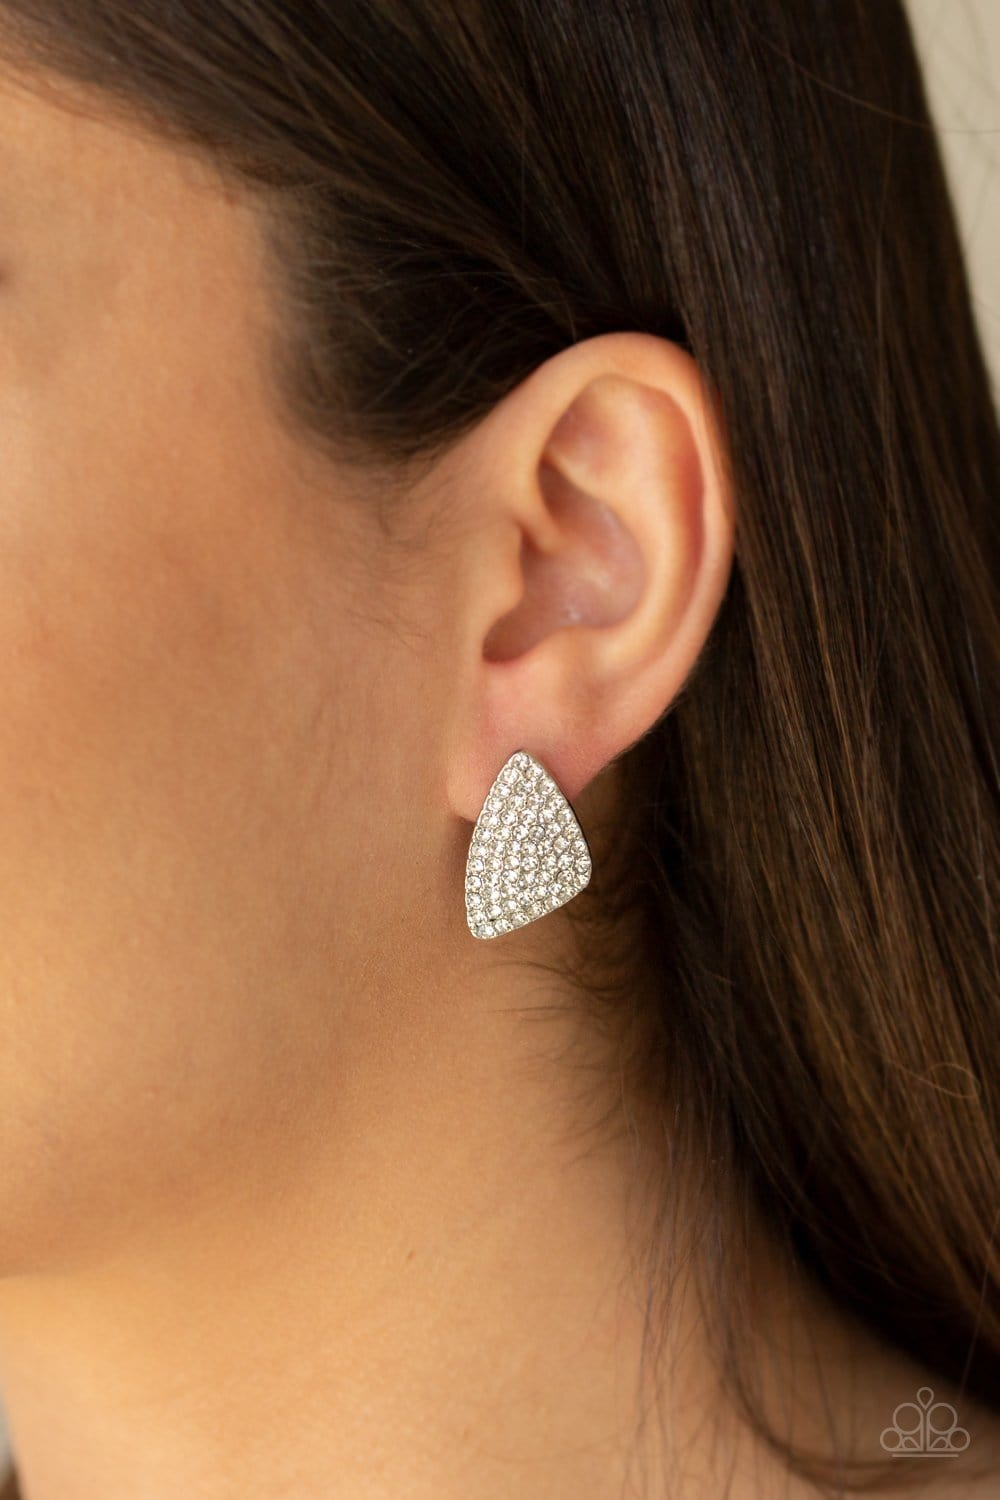 Paparazzi: Supreme Sheen - White Rhinestone Post Earrings - Jewels N' Thingz Boutique